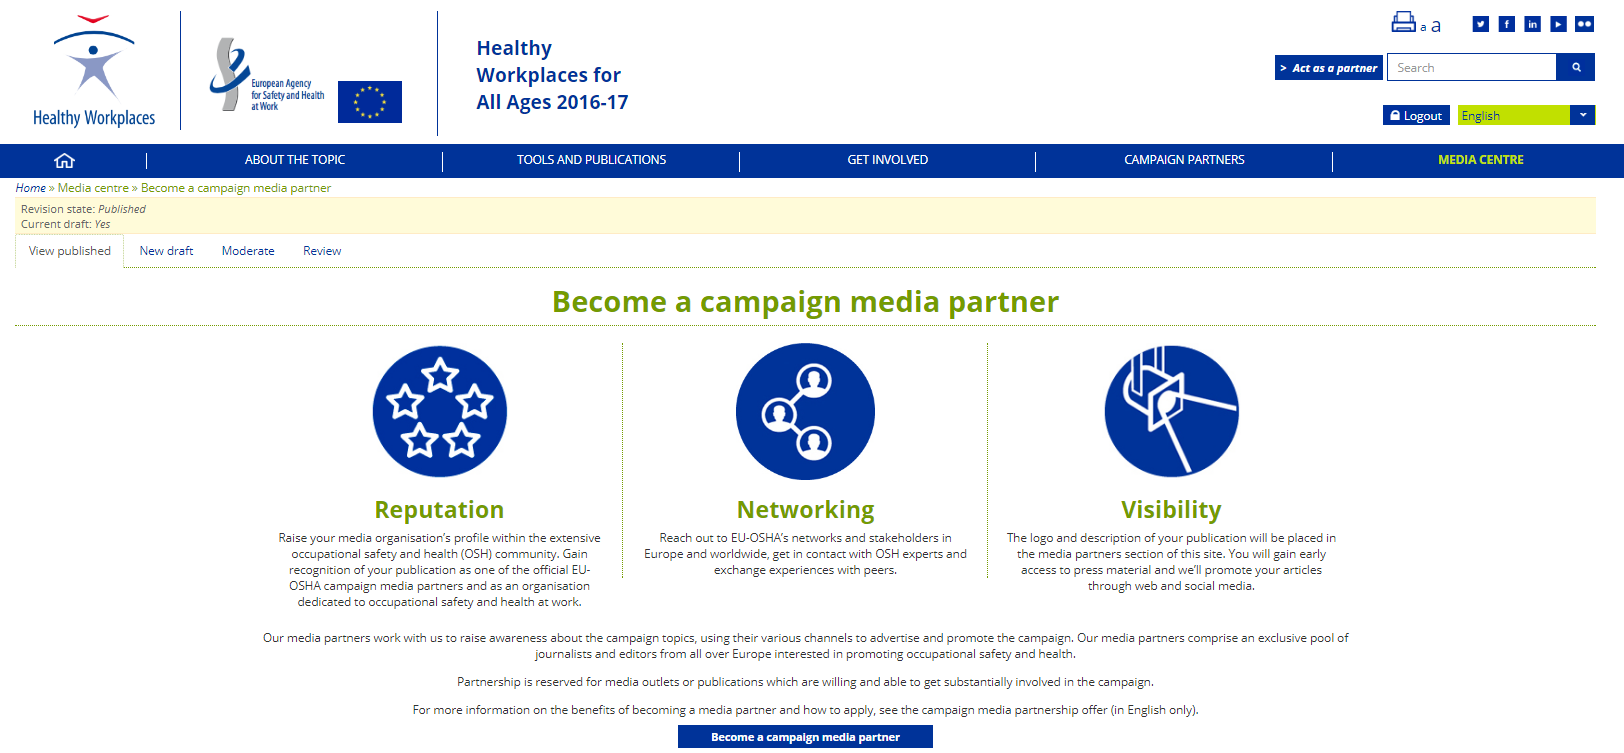 Become a campaign media partner